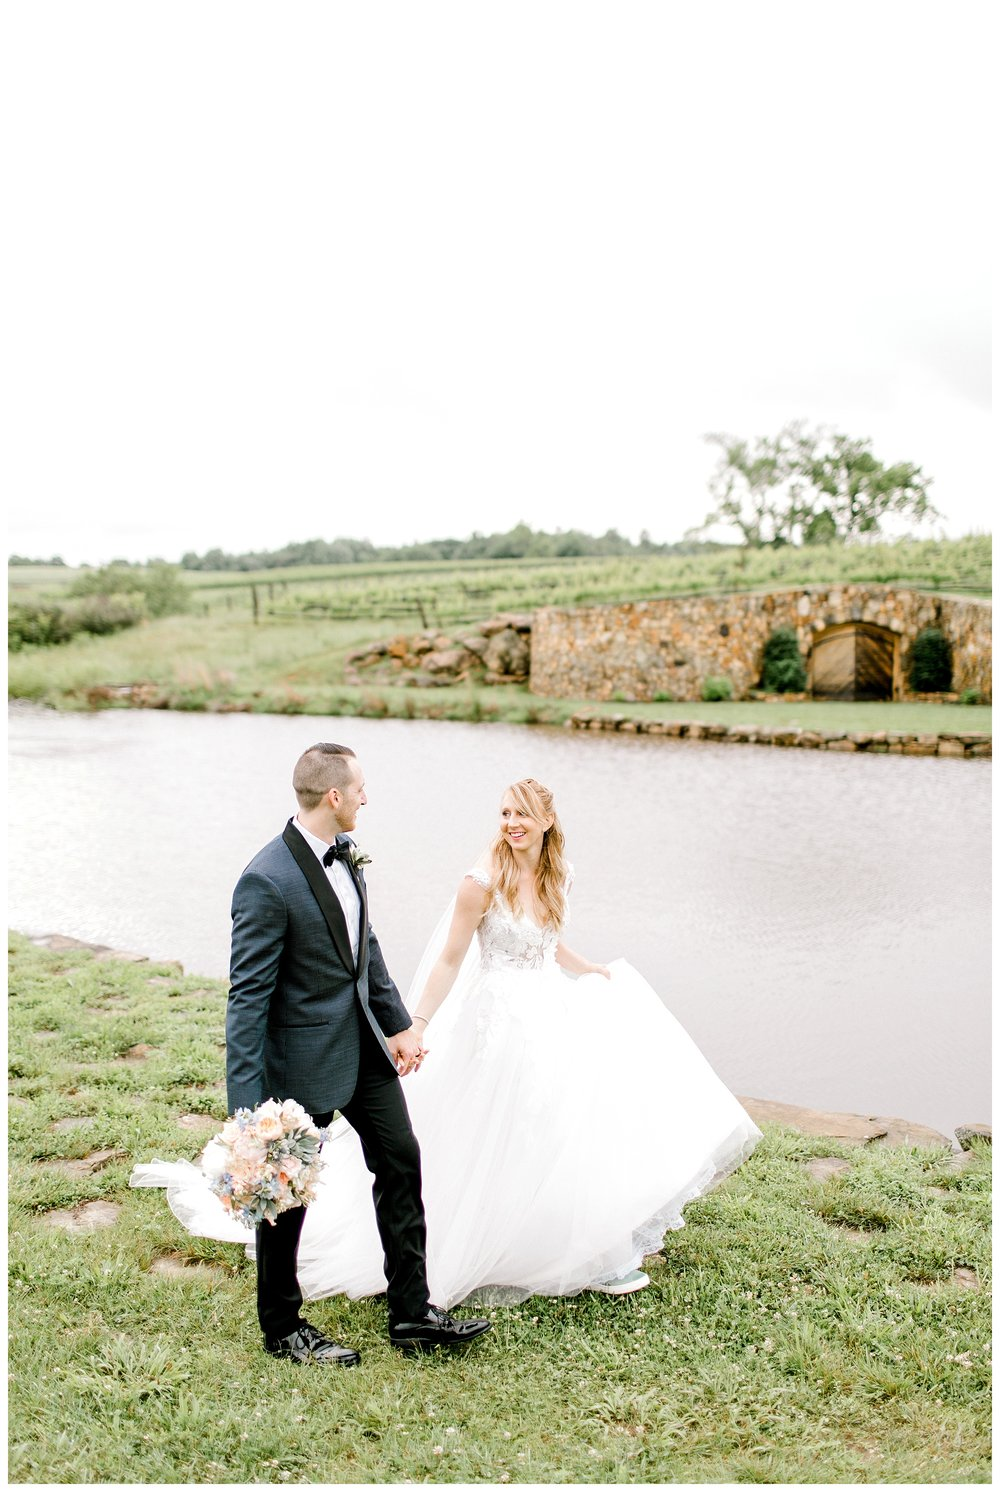 Stone Tower Winery Wedding Virginia Wedding Photographer Kir Tuben_0072.jpg